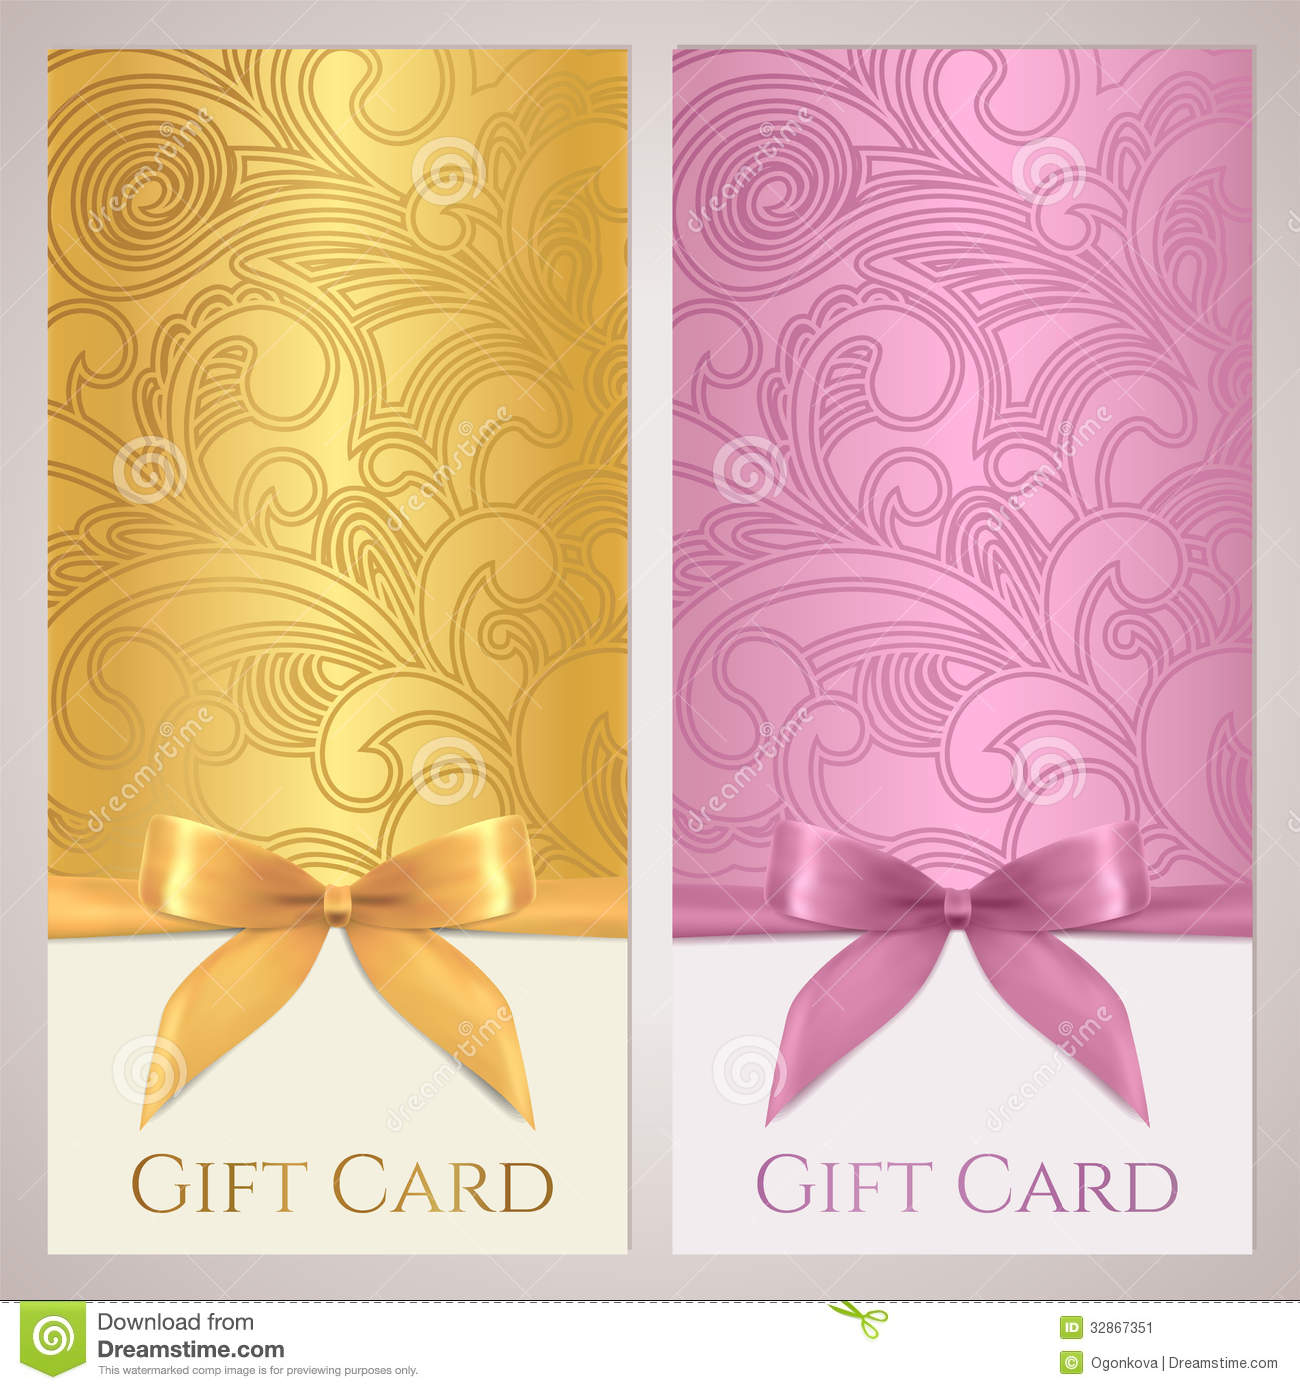 gift certificate template curriculum vitae refference gift certificate template gift template gift certificate templates gift certificate gift card voucher coupon